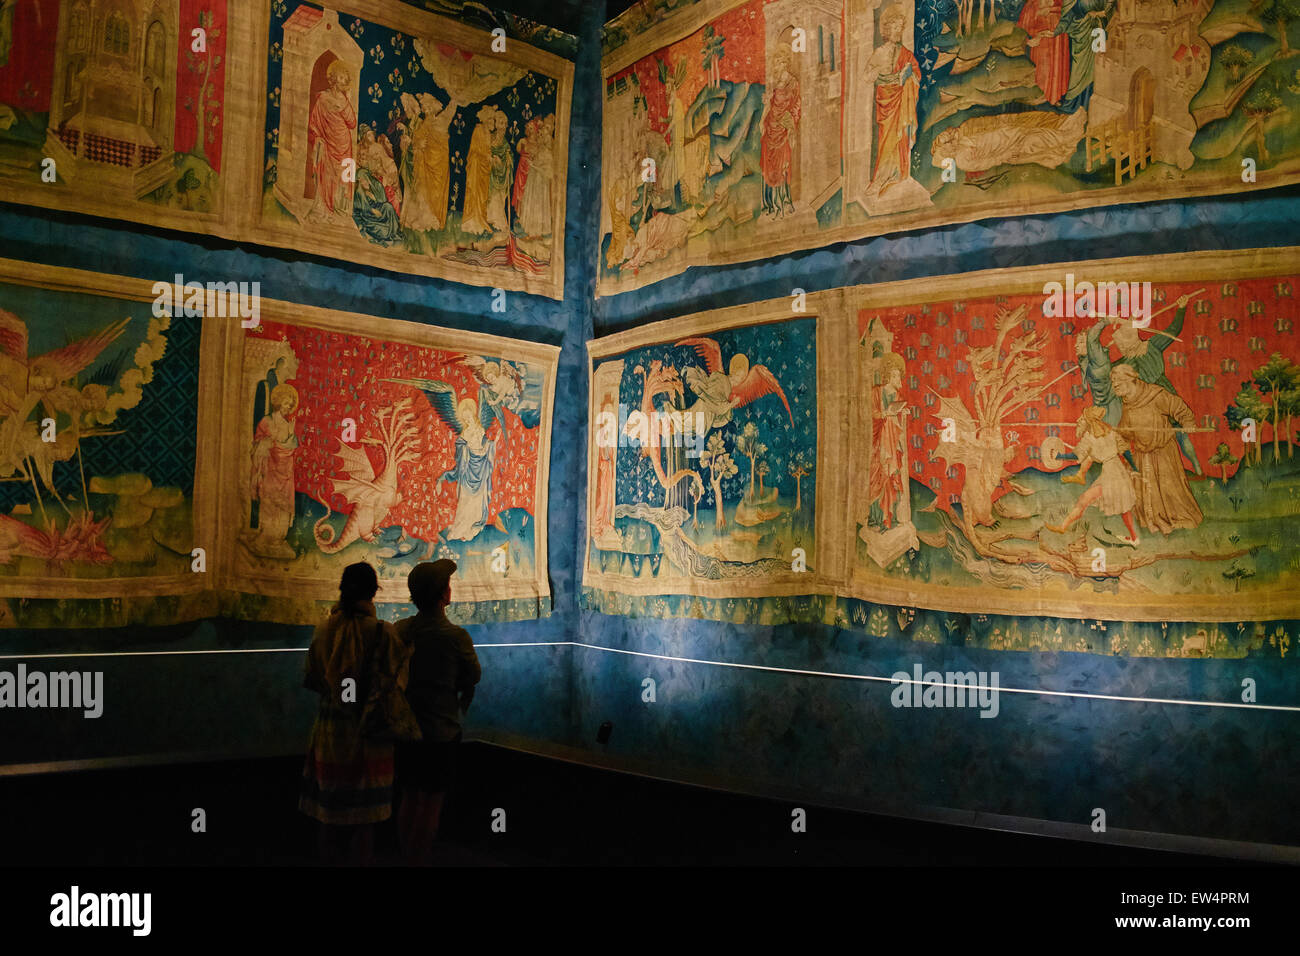 France, Maine-et-Loire, Angers, Apocalypse of Angers Tapestries on Display at Chateau d'Angers - Stock Image